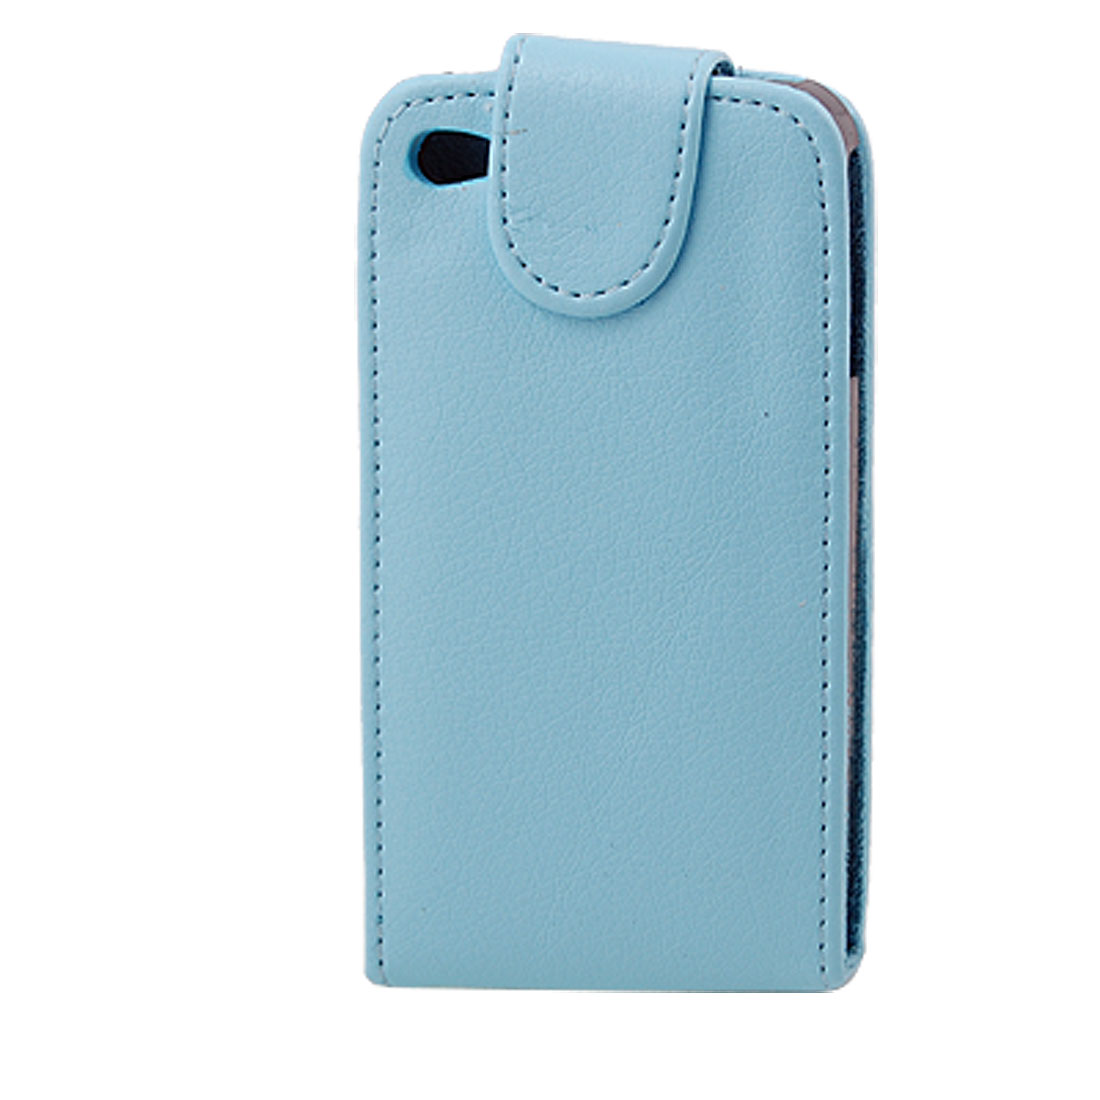 Magnetic Closure Babyblue Faux Leather Pouch Case for iPhone 4 4G